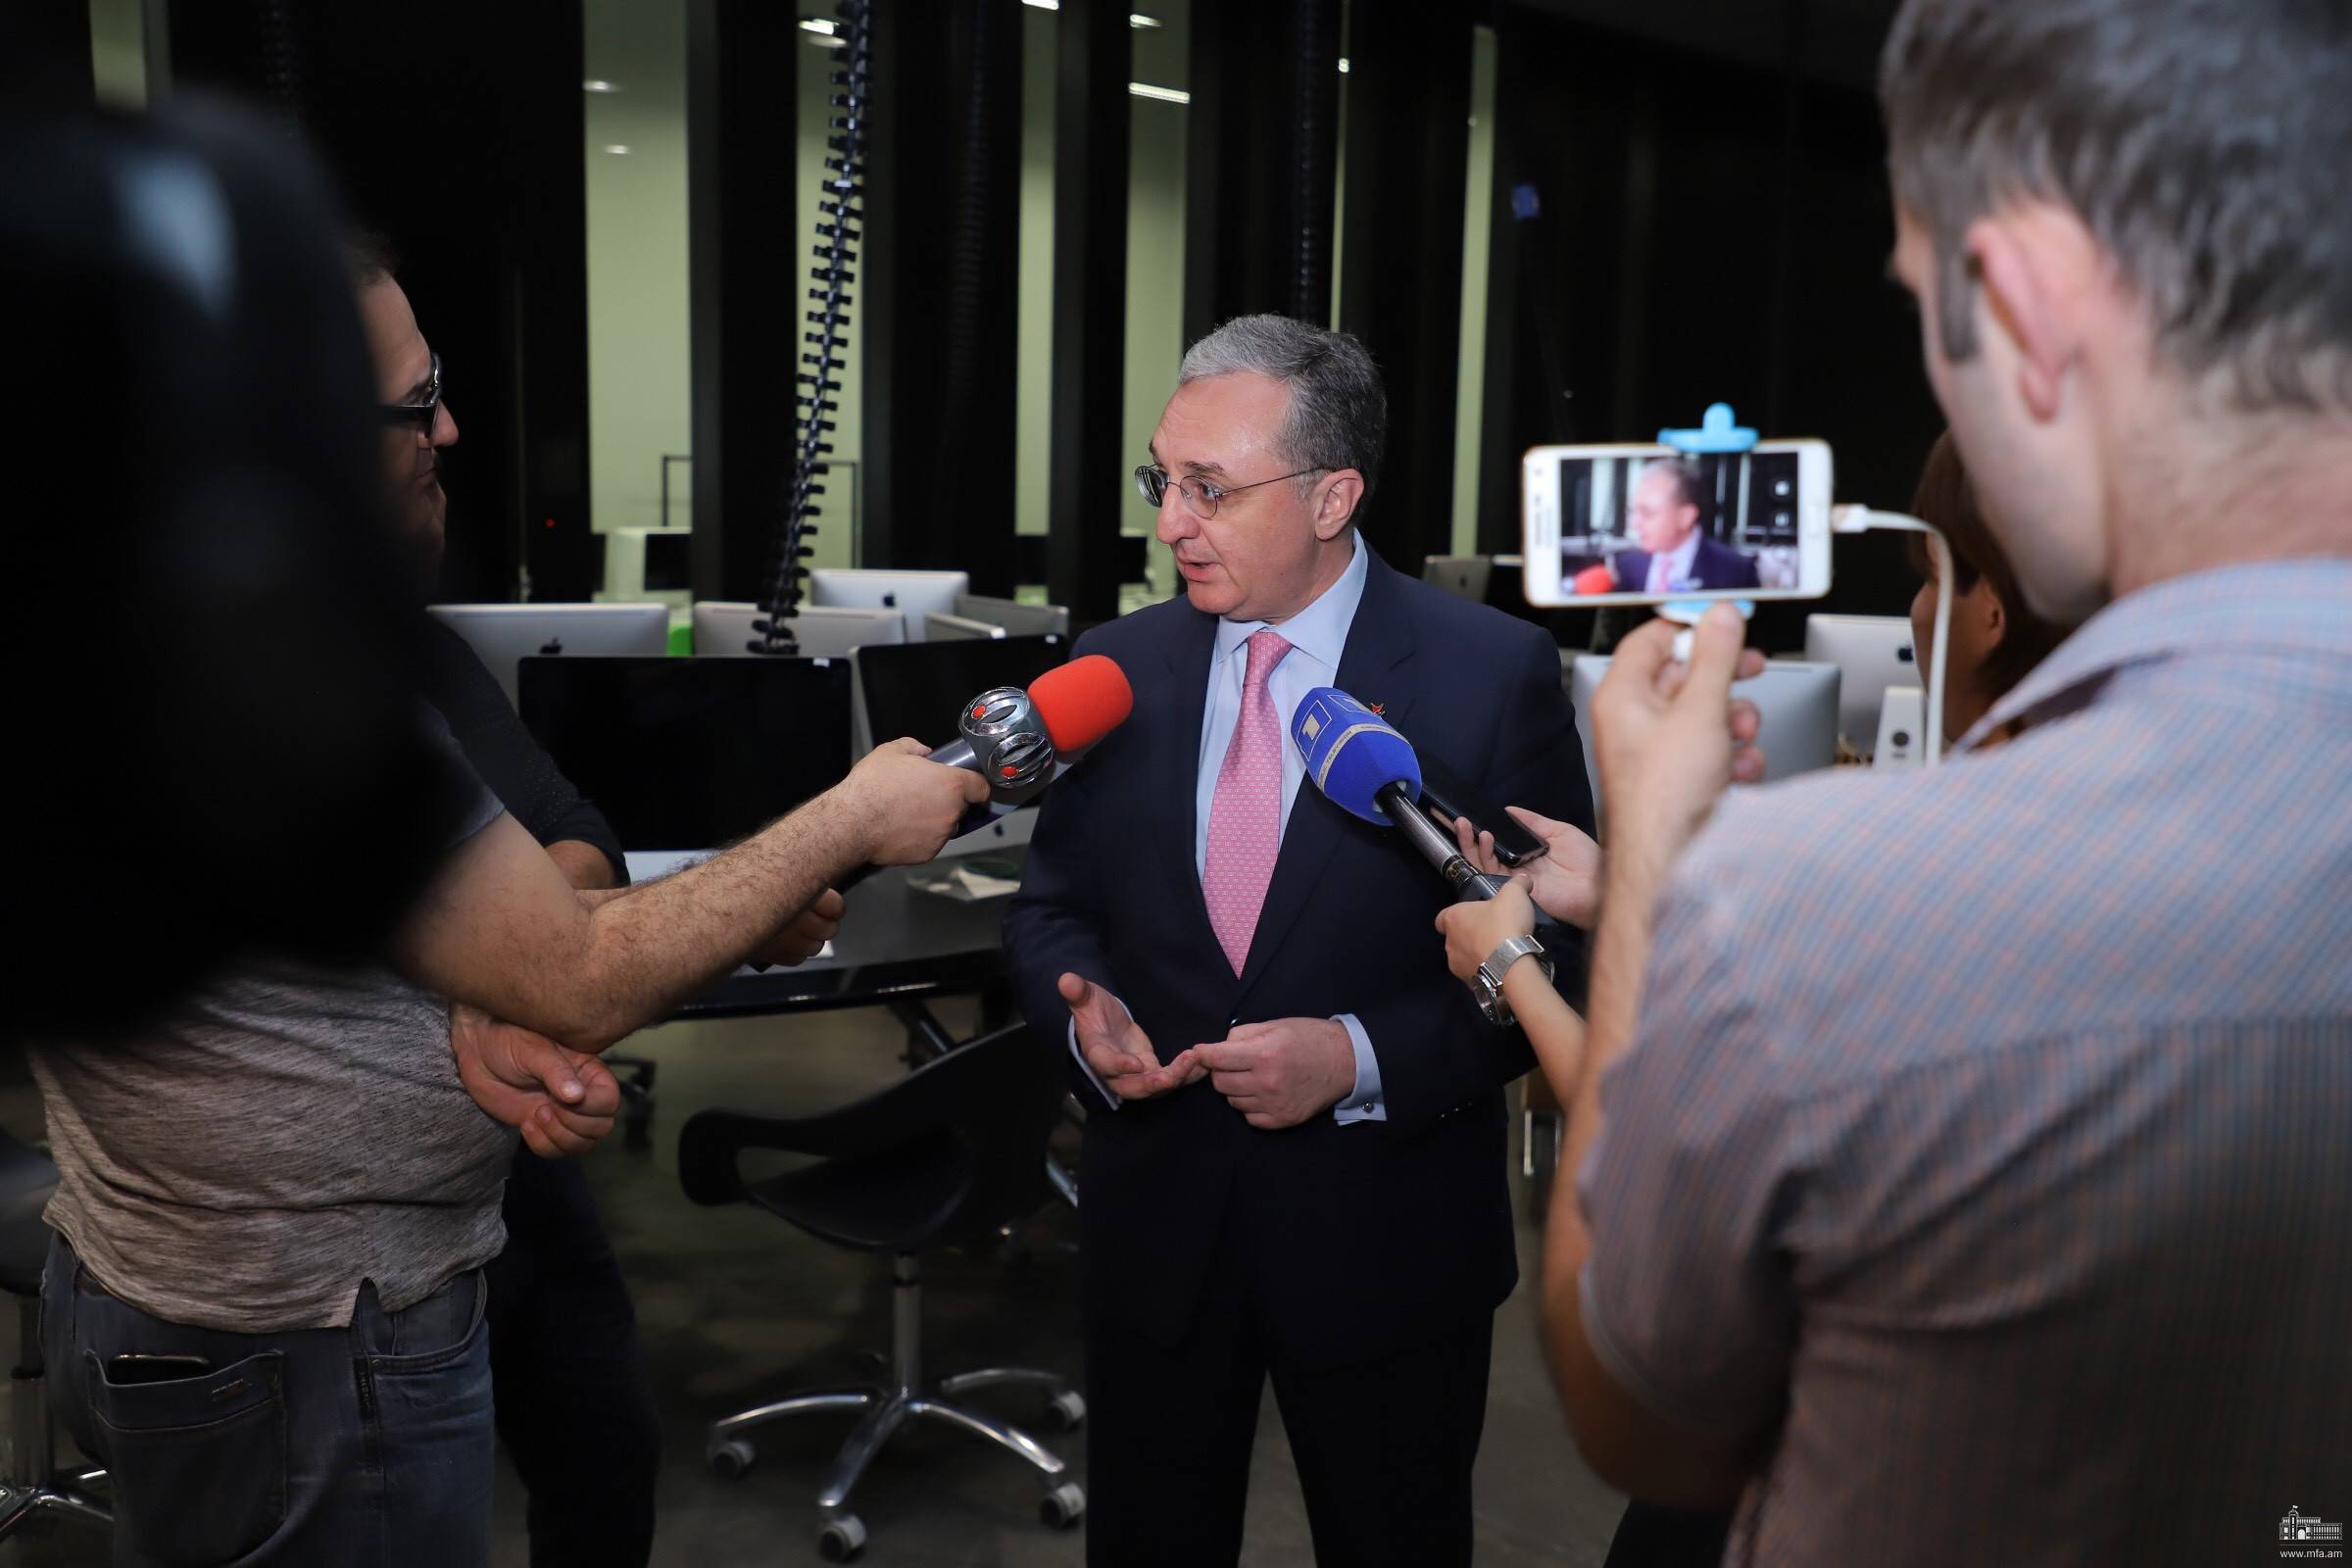 Briefing of Foreign Minister Zohrab Mnatsakanyan with journalists on the results of the meeting in business circles